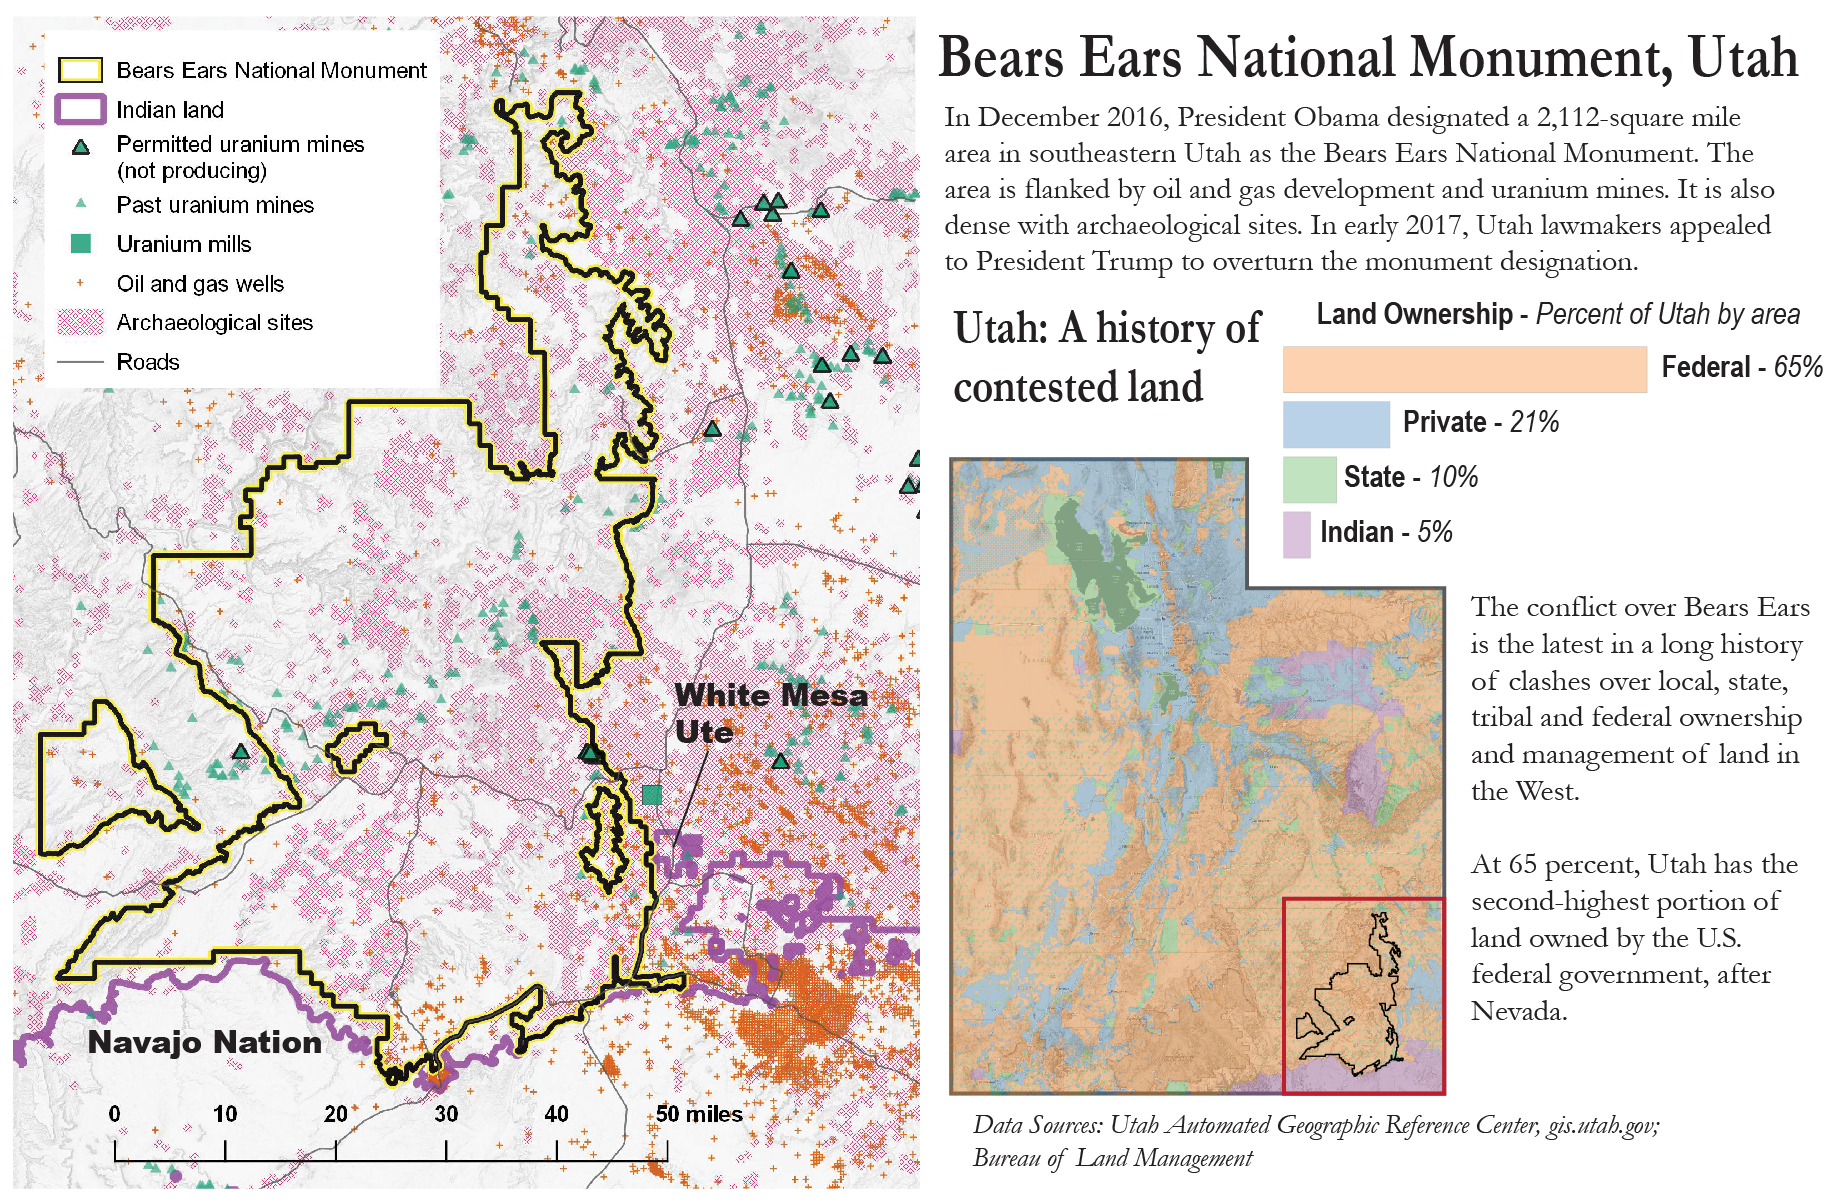 Land use, energy resources, and archaeological sites in and around the Bears Ears National Monument